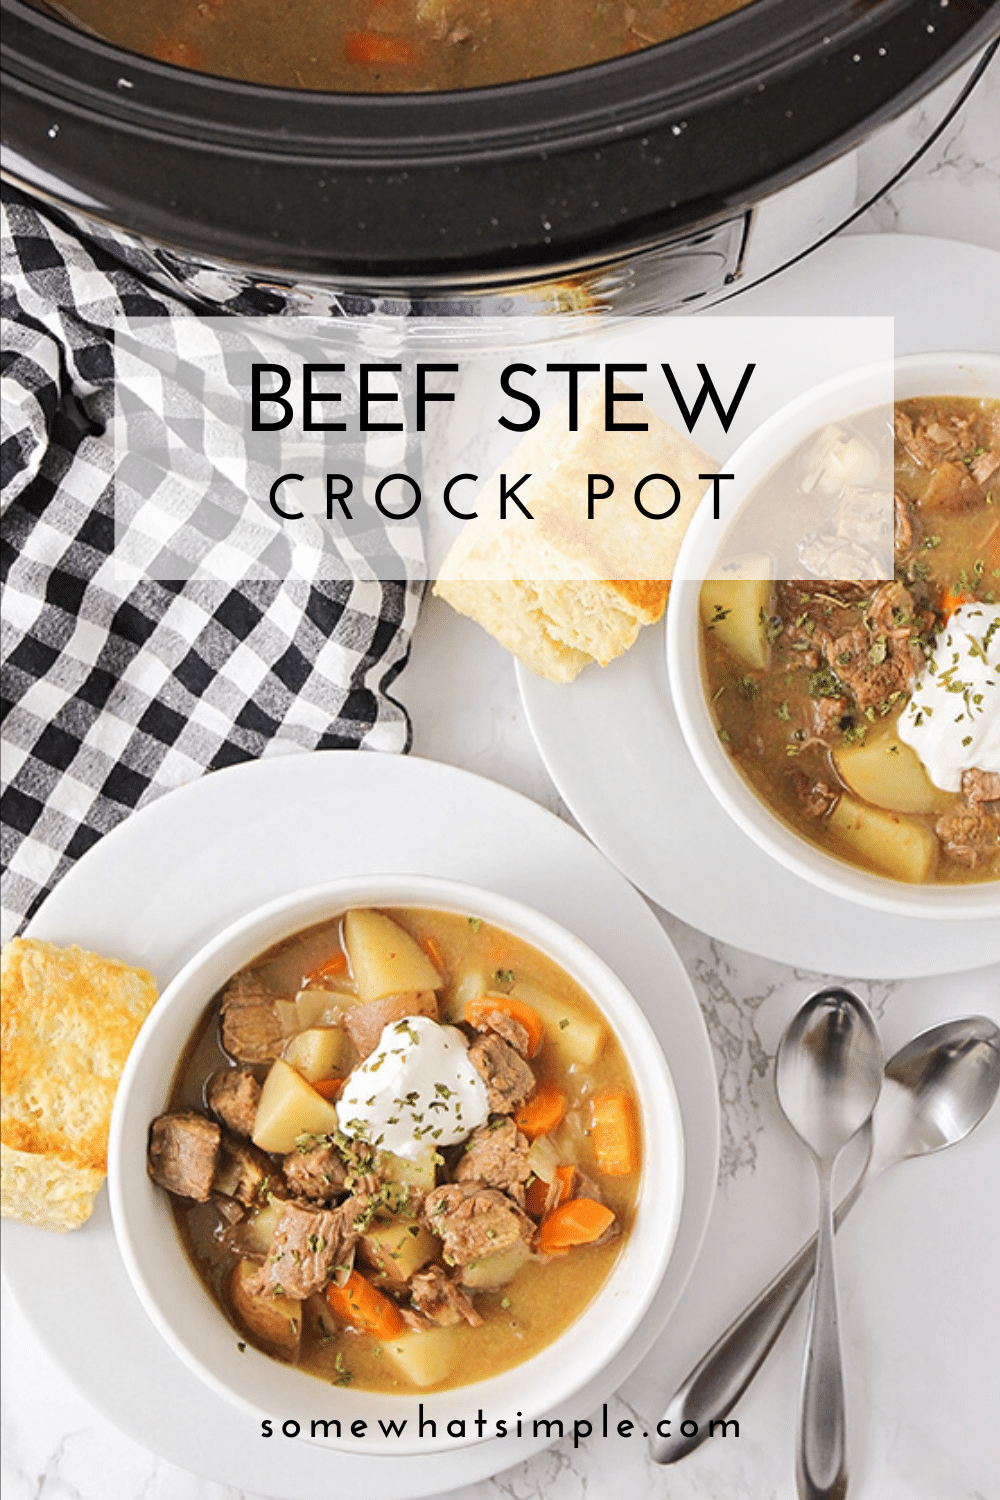 This crock pot beef stew is a savory recipe that is the perfect comfort-food meal.  Made in a slow cooker all day until the beef is incredibly tender and hearty vegetables are bursting with flavor! This dinner recipe is so easy to make, you can enjoy it all year long! via @somewhatsimple